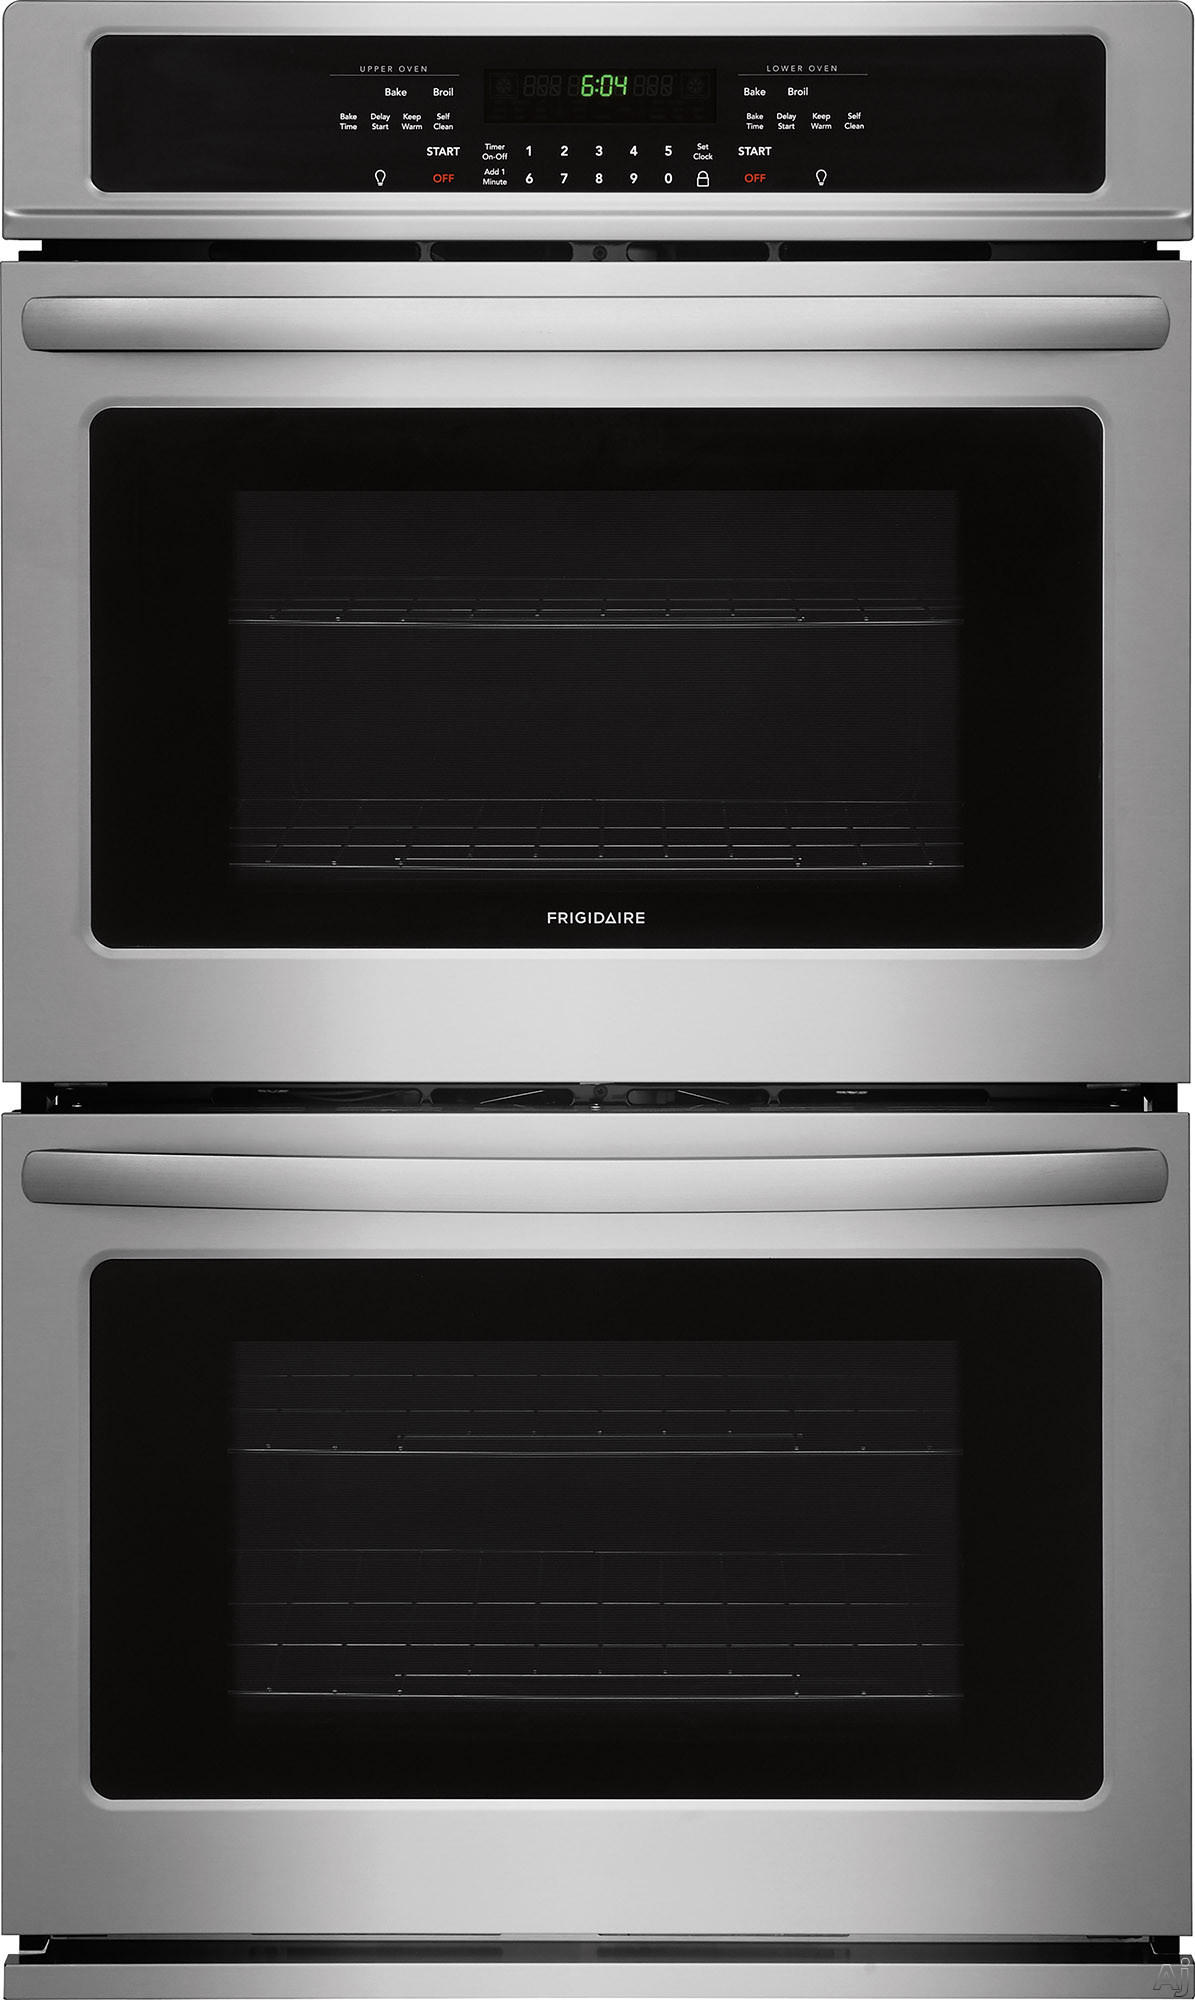 Frigidaire FFET2726TS 27 Inch Electric Double Wall Oven with Vari-Broil™ Temperature Control, Ready-Select® Controls, Even Baking Technology, Self-Cleaning, Delay Bake, Star-K® Certified S